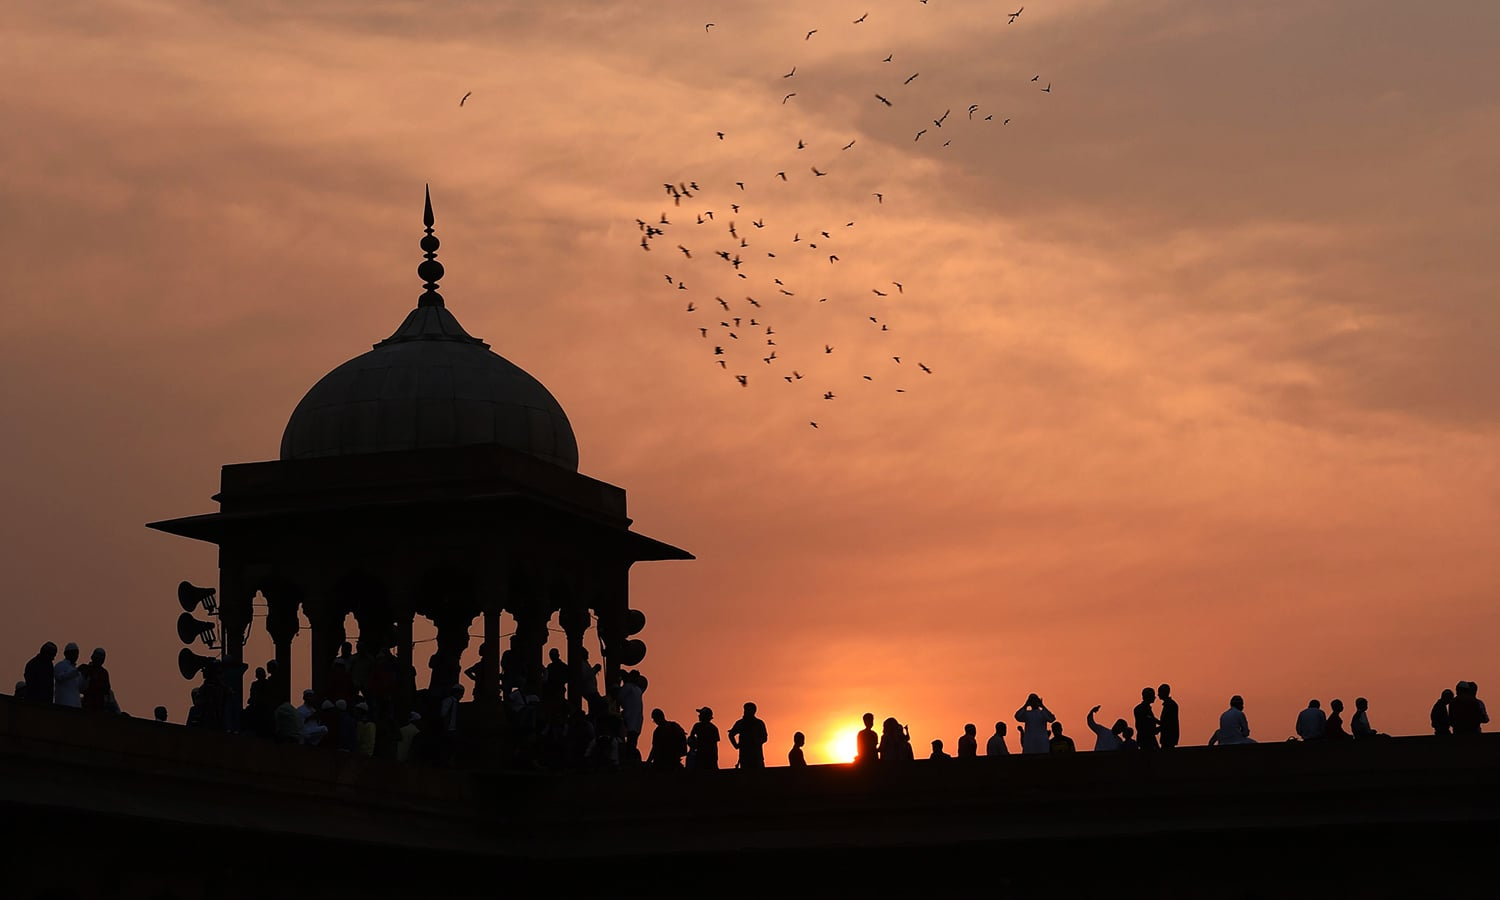 Indian Muslims gather in the early morning to offer prayers during Eid at Jama Masjid mosque in New Delhi. ─ AFP